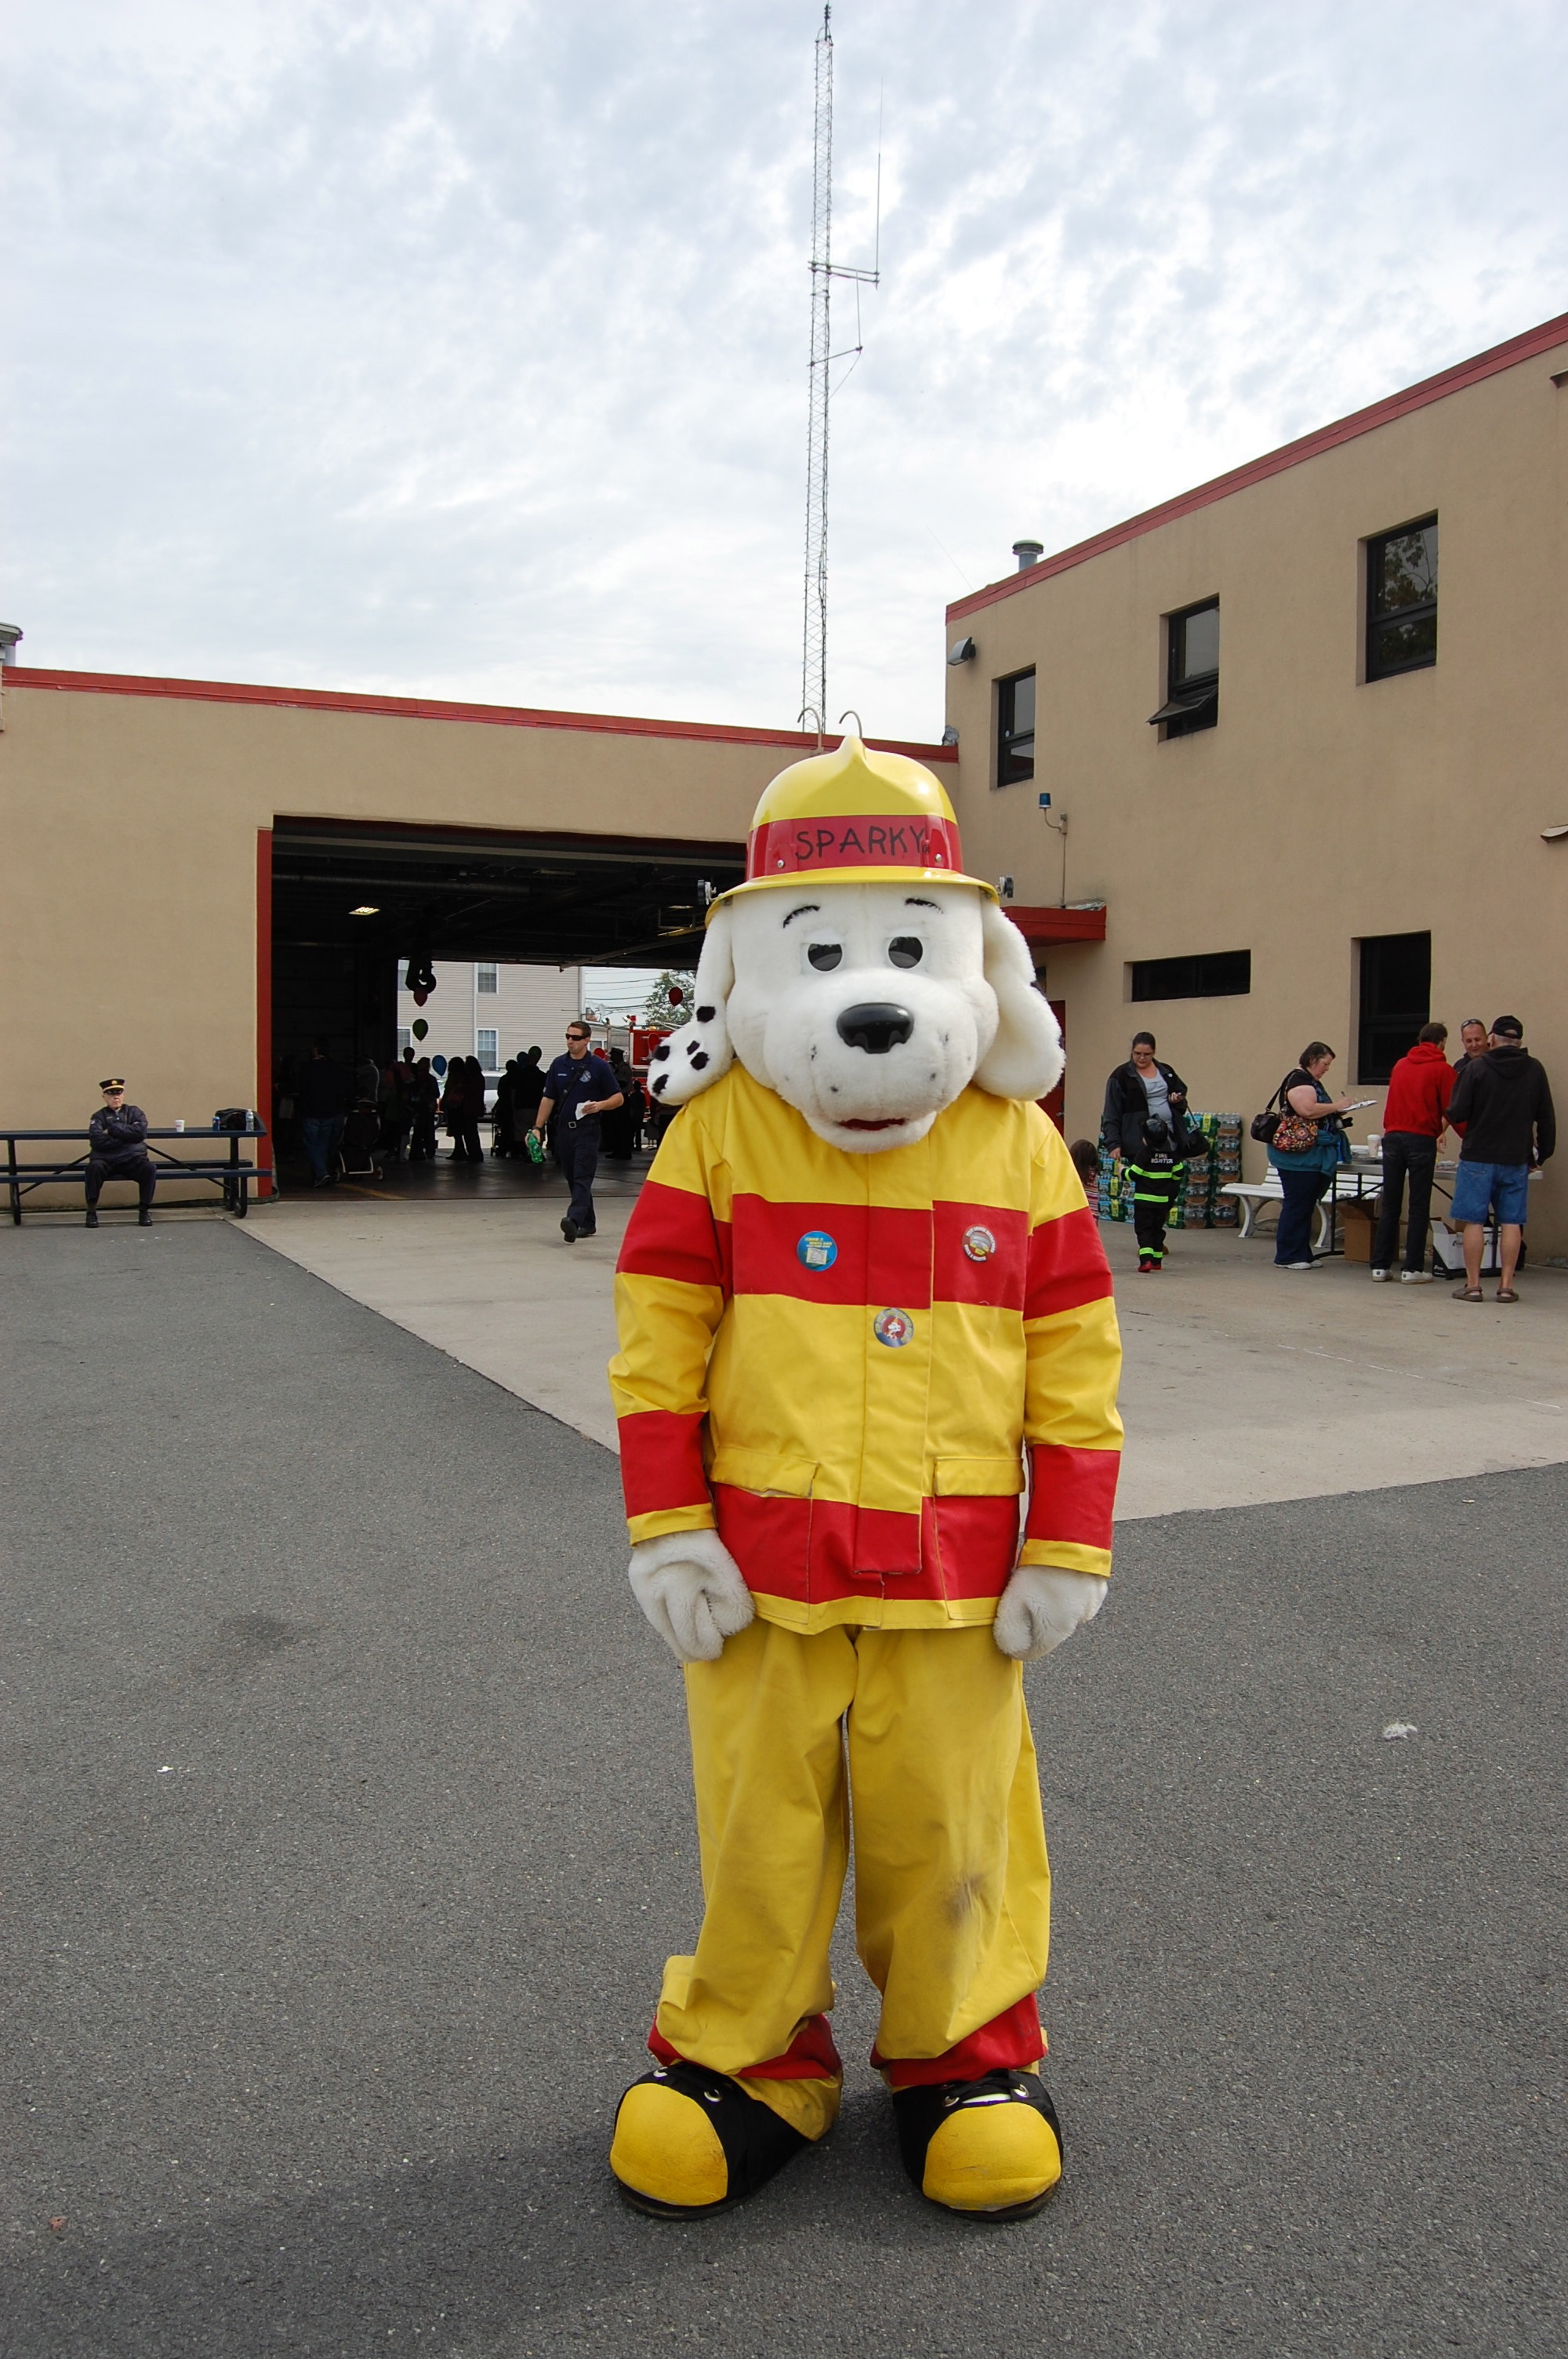 e254315058e11b1e893e_firehouse_dog.jpg